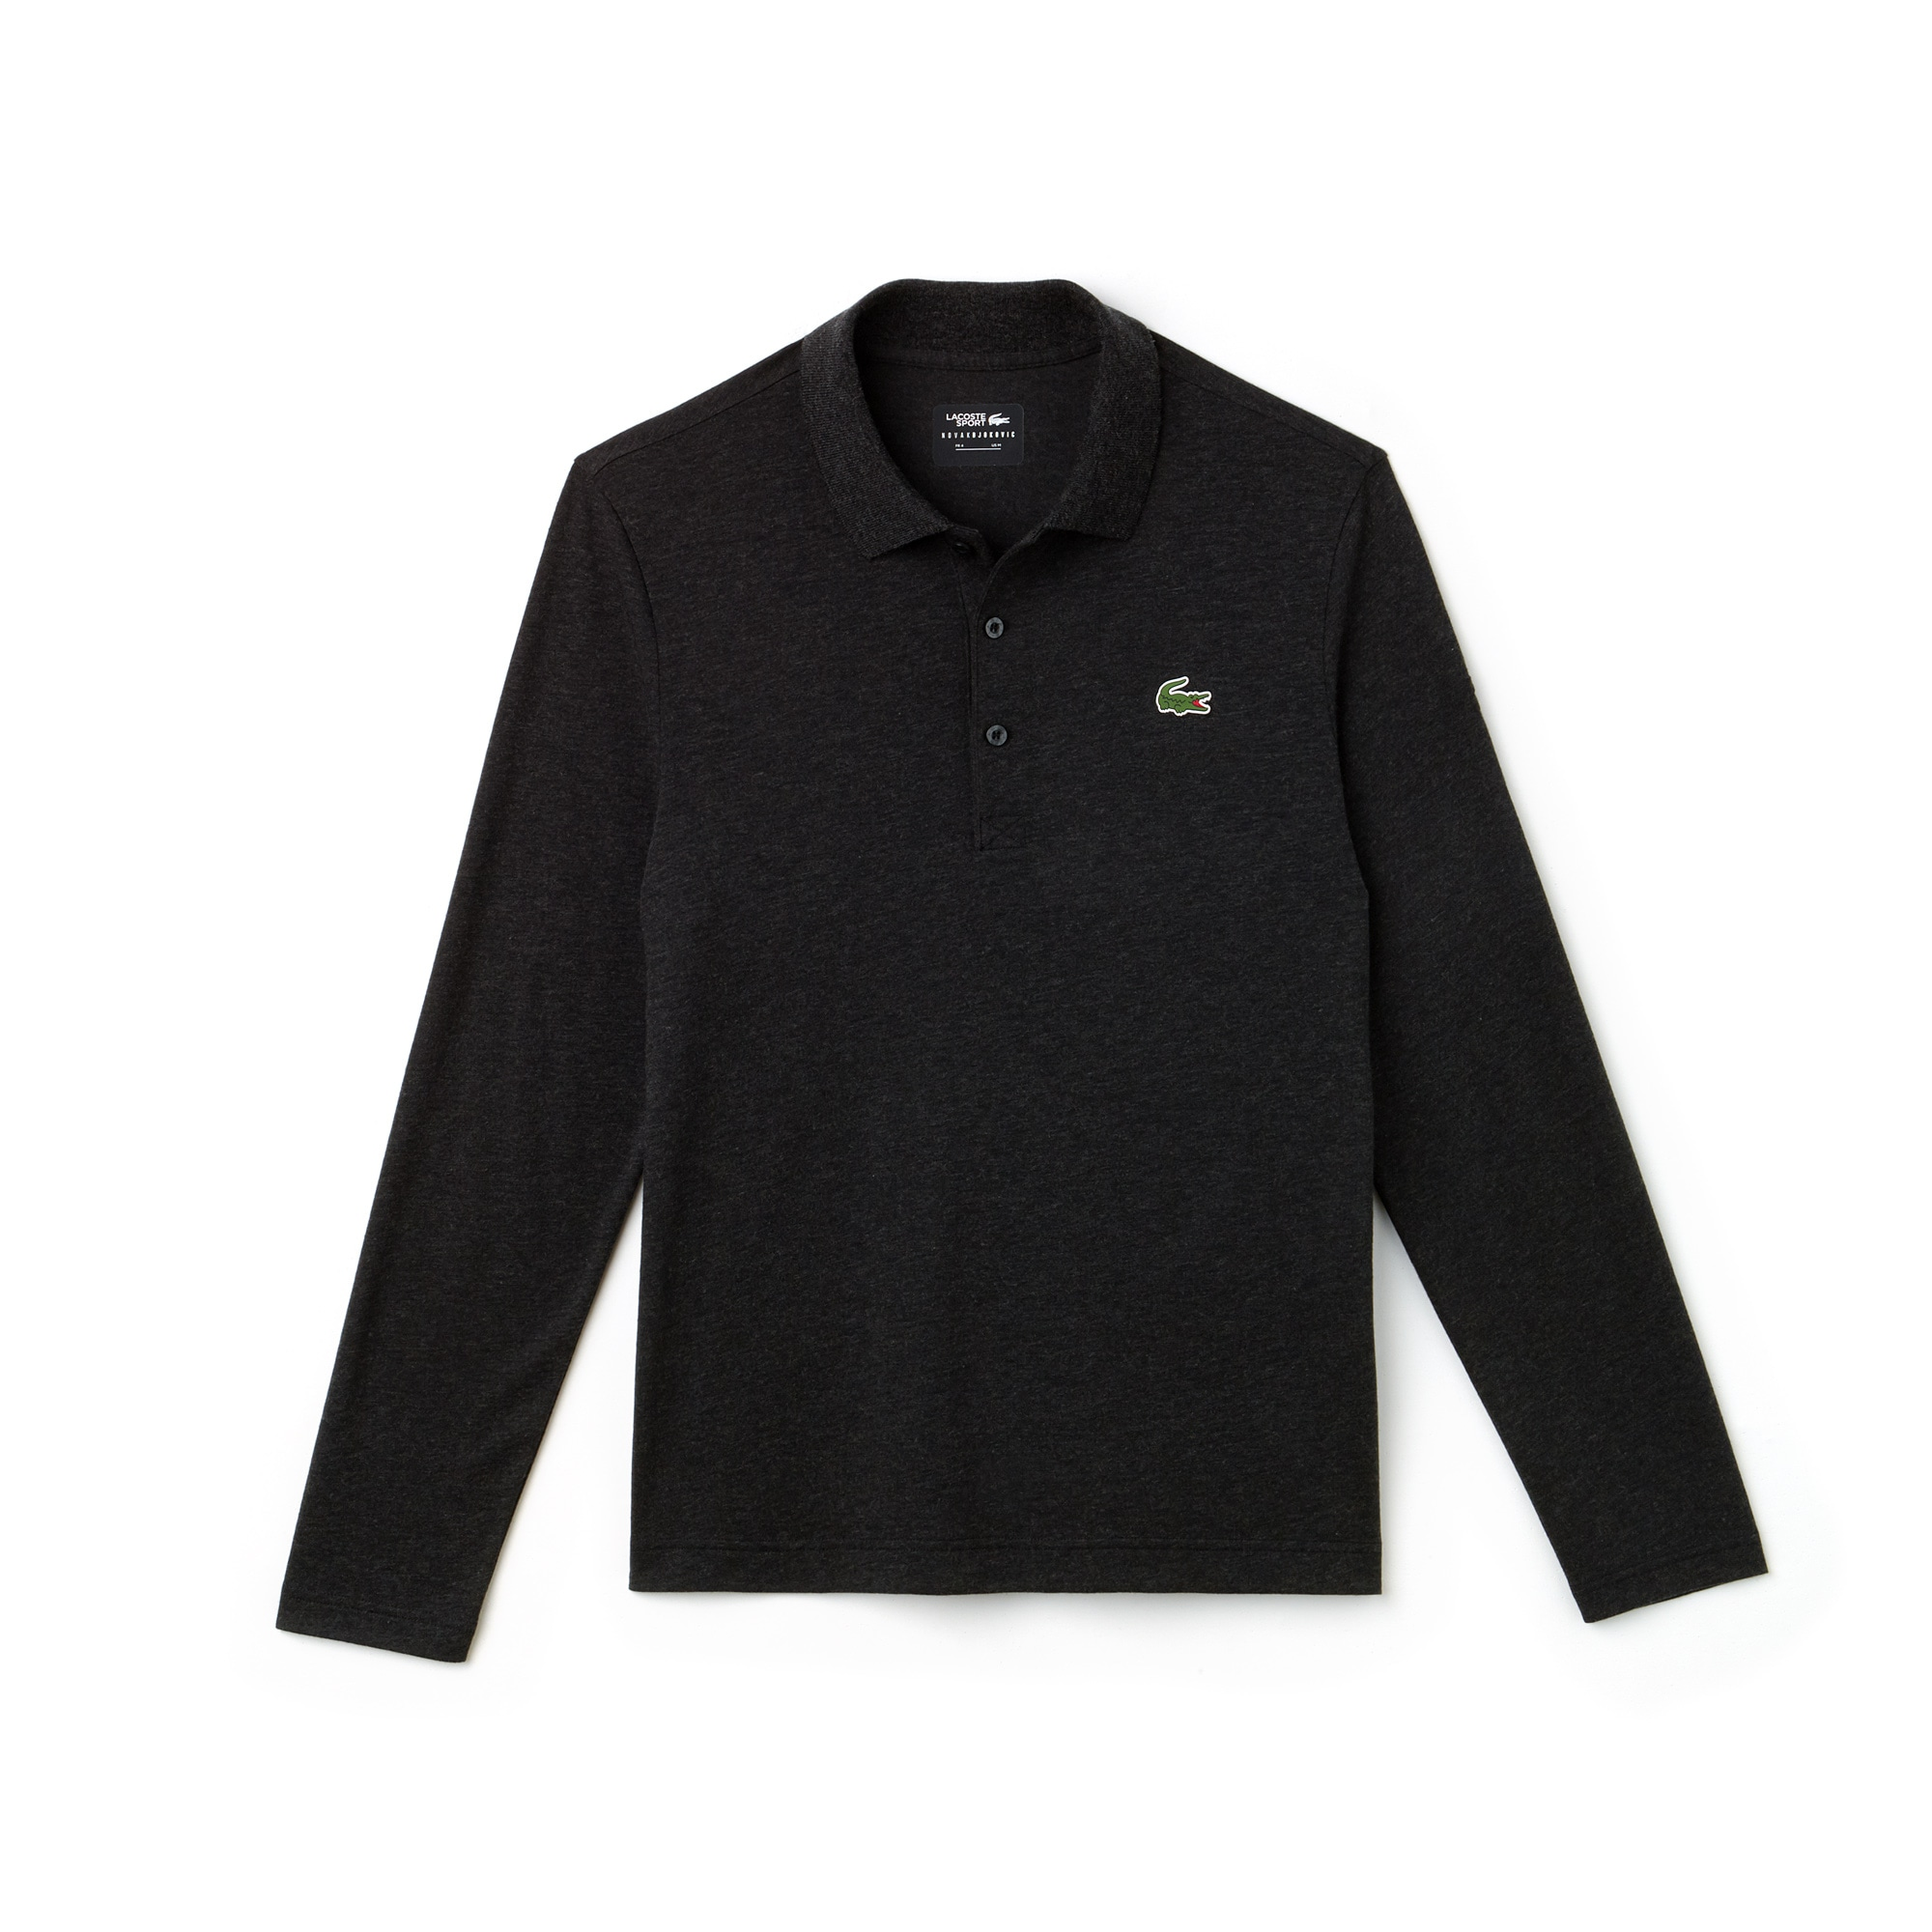 Men's SPORT Technical Wool Polo - Novak Djokovic Collection